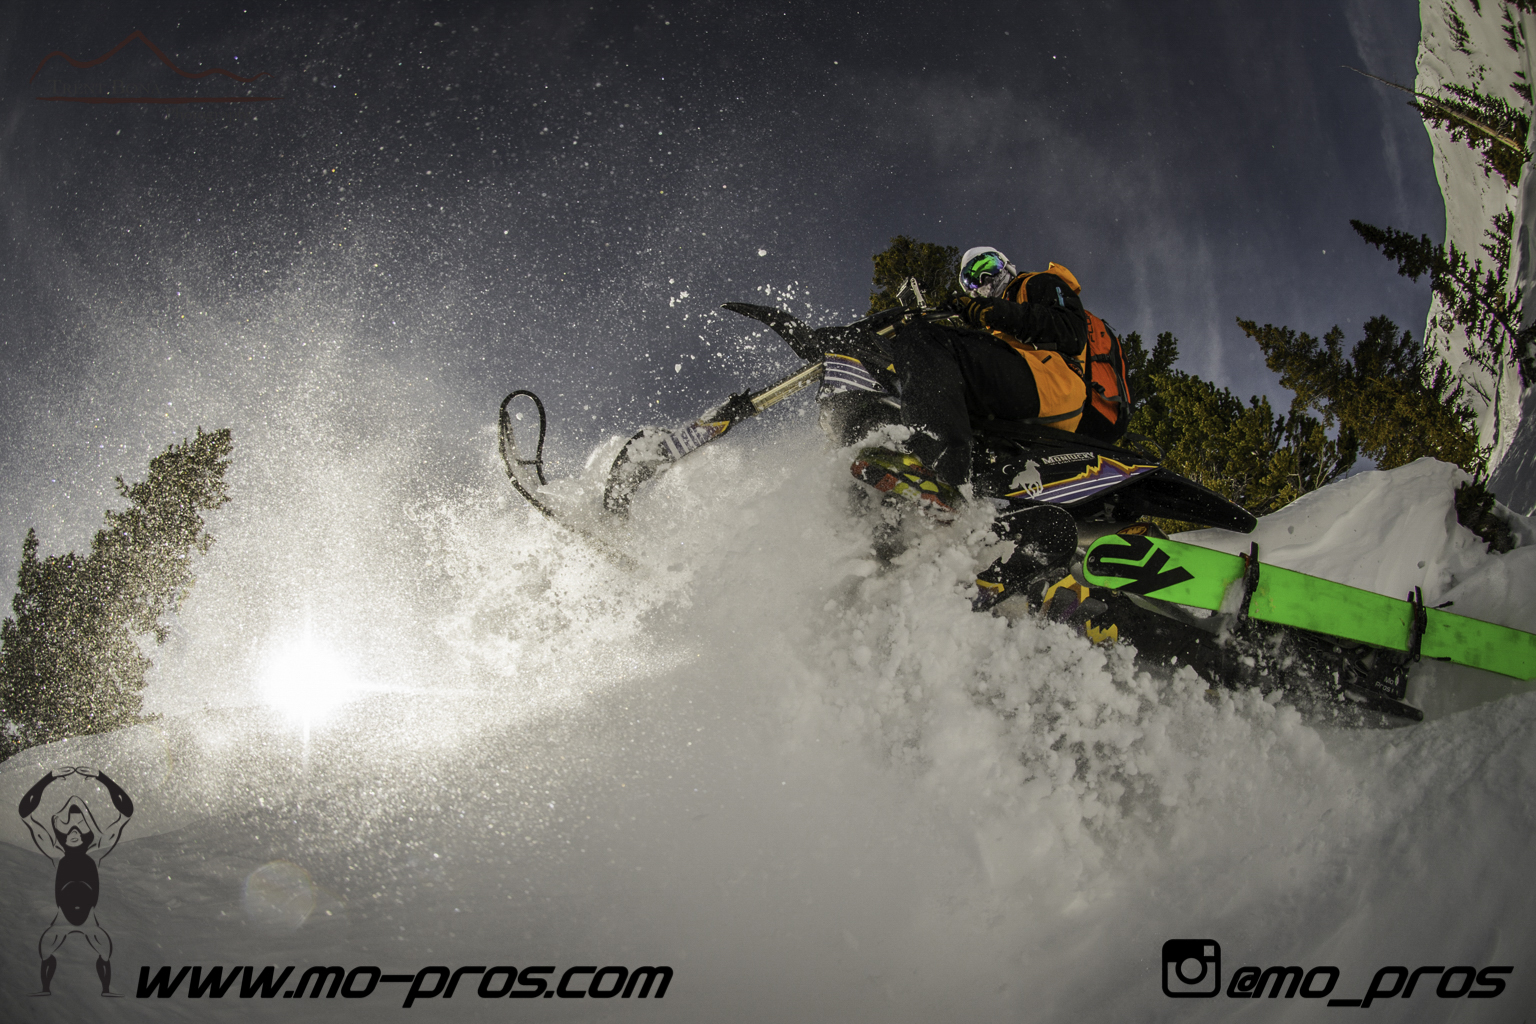 34_Backcountry _Backcountry United_Rack_Ski_Snowbike_Timbersled Rack_Tsaina Rack_CFR rack_Cheetah Factory Racing_gas Rack_Gear_Gun Rack_LinQ Snowboard Ski_Snowboard rack_snowboard_Snowboarding_snowmo.jpg